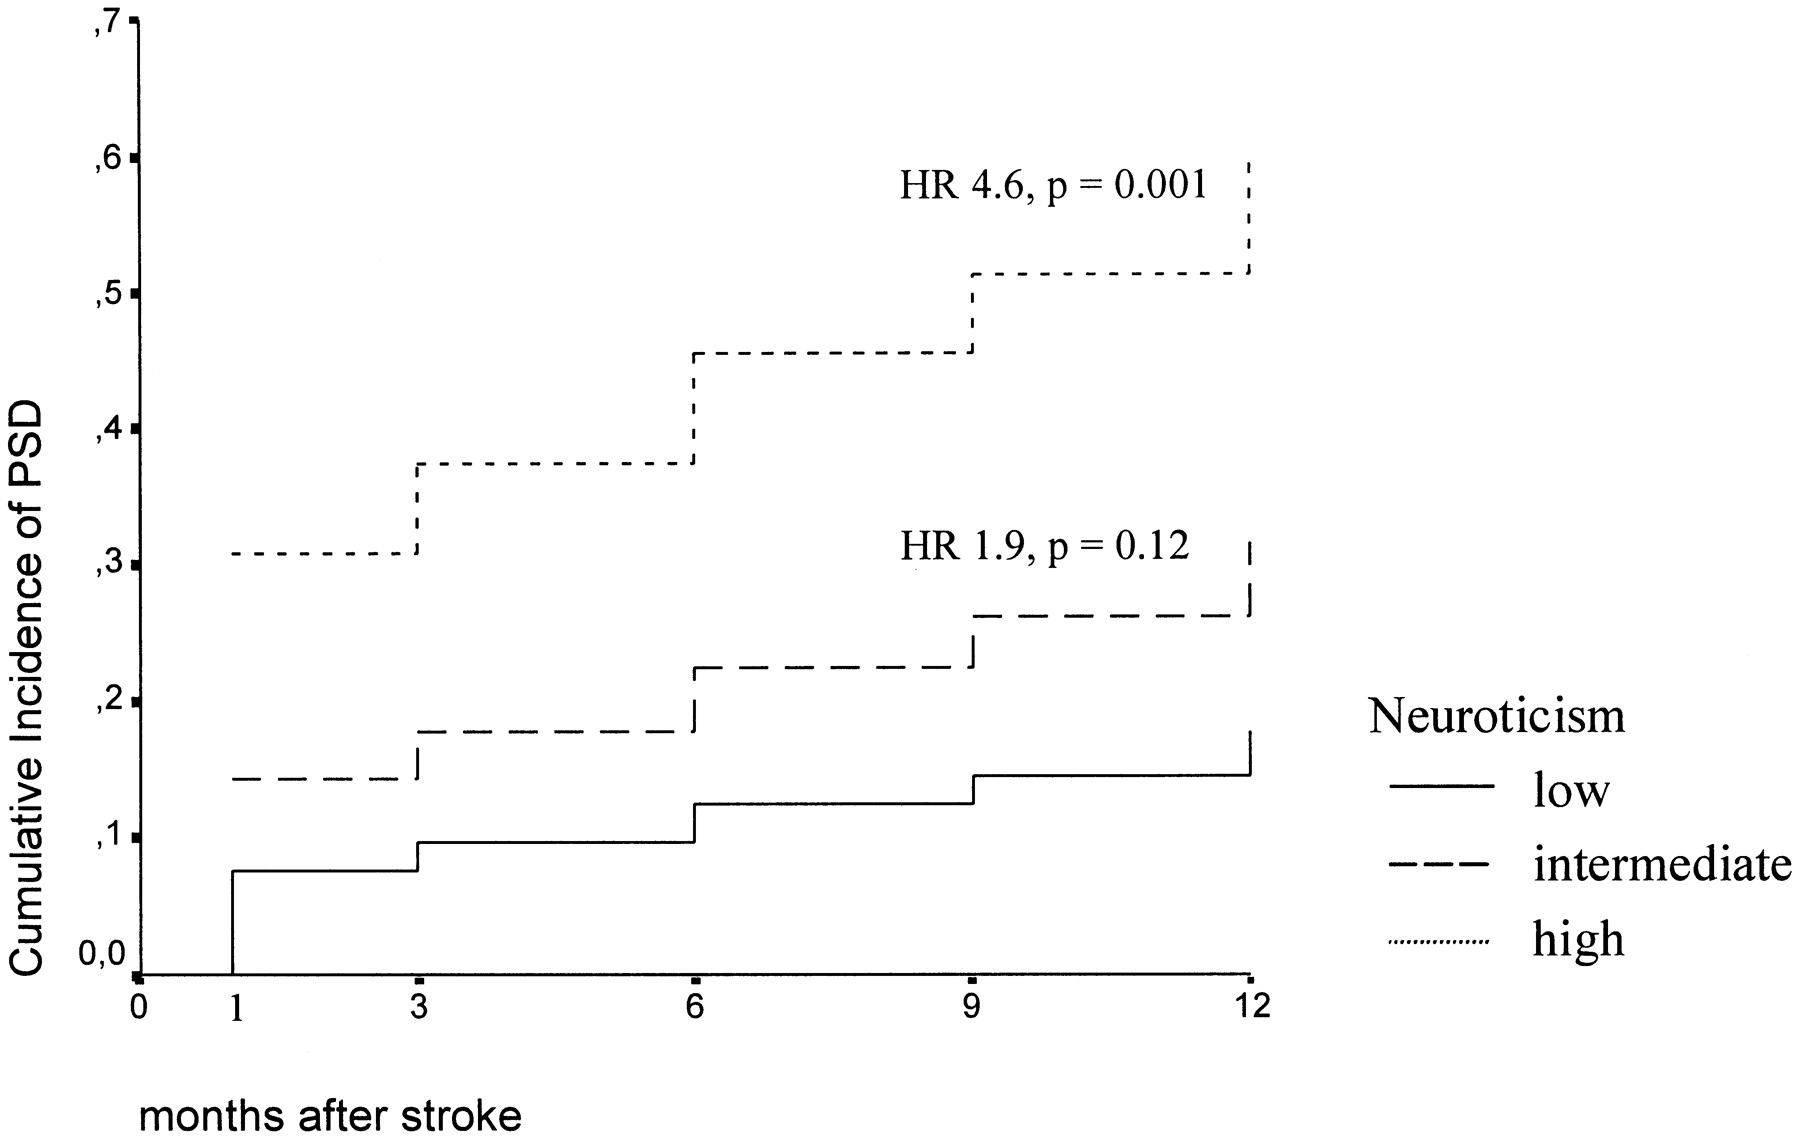 Personality and Vulnerability to Depression in Stroke